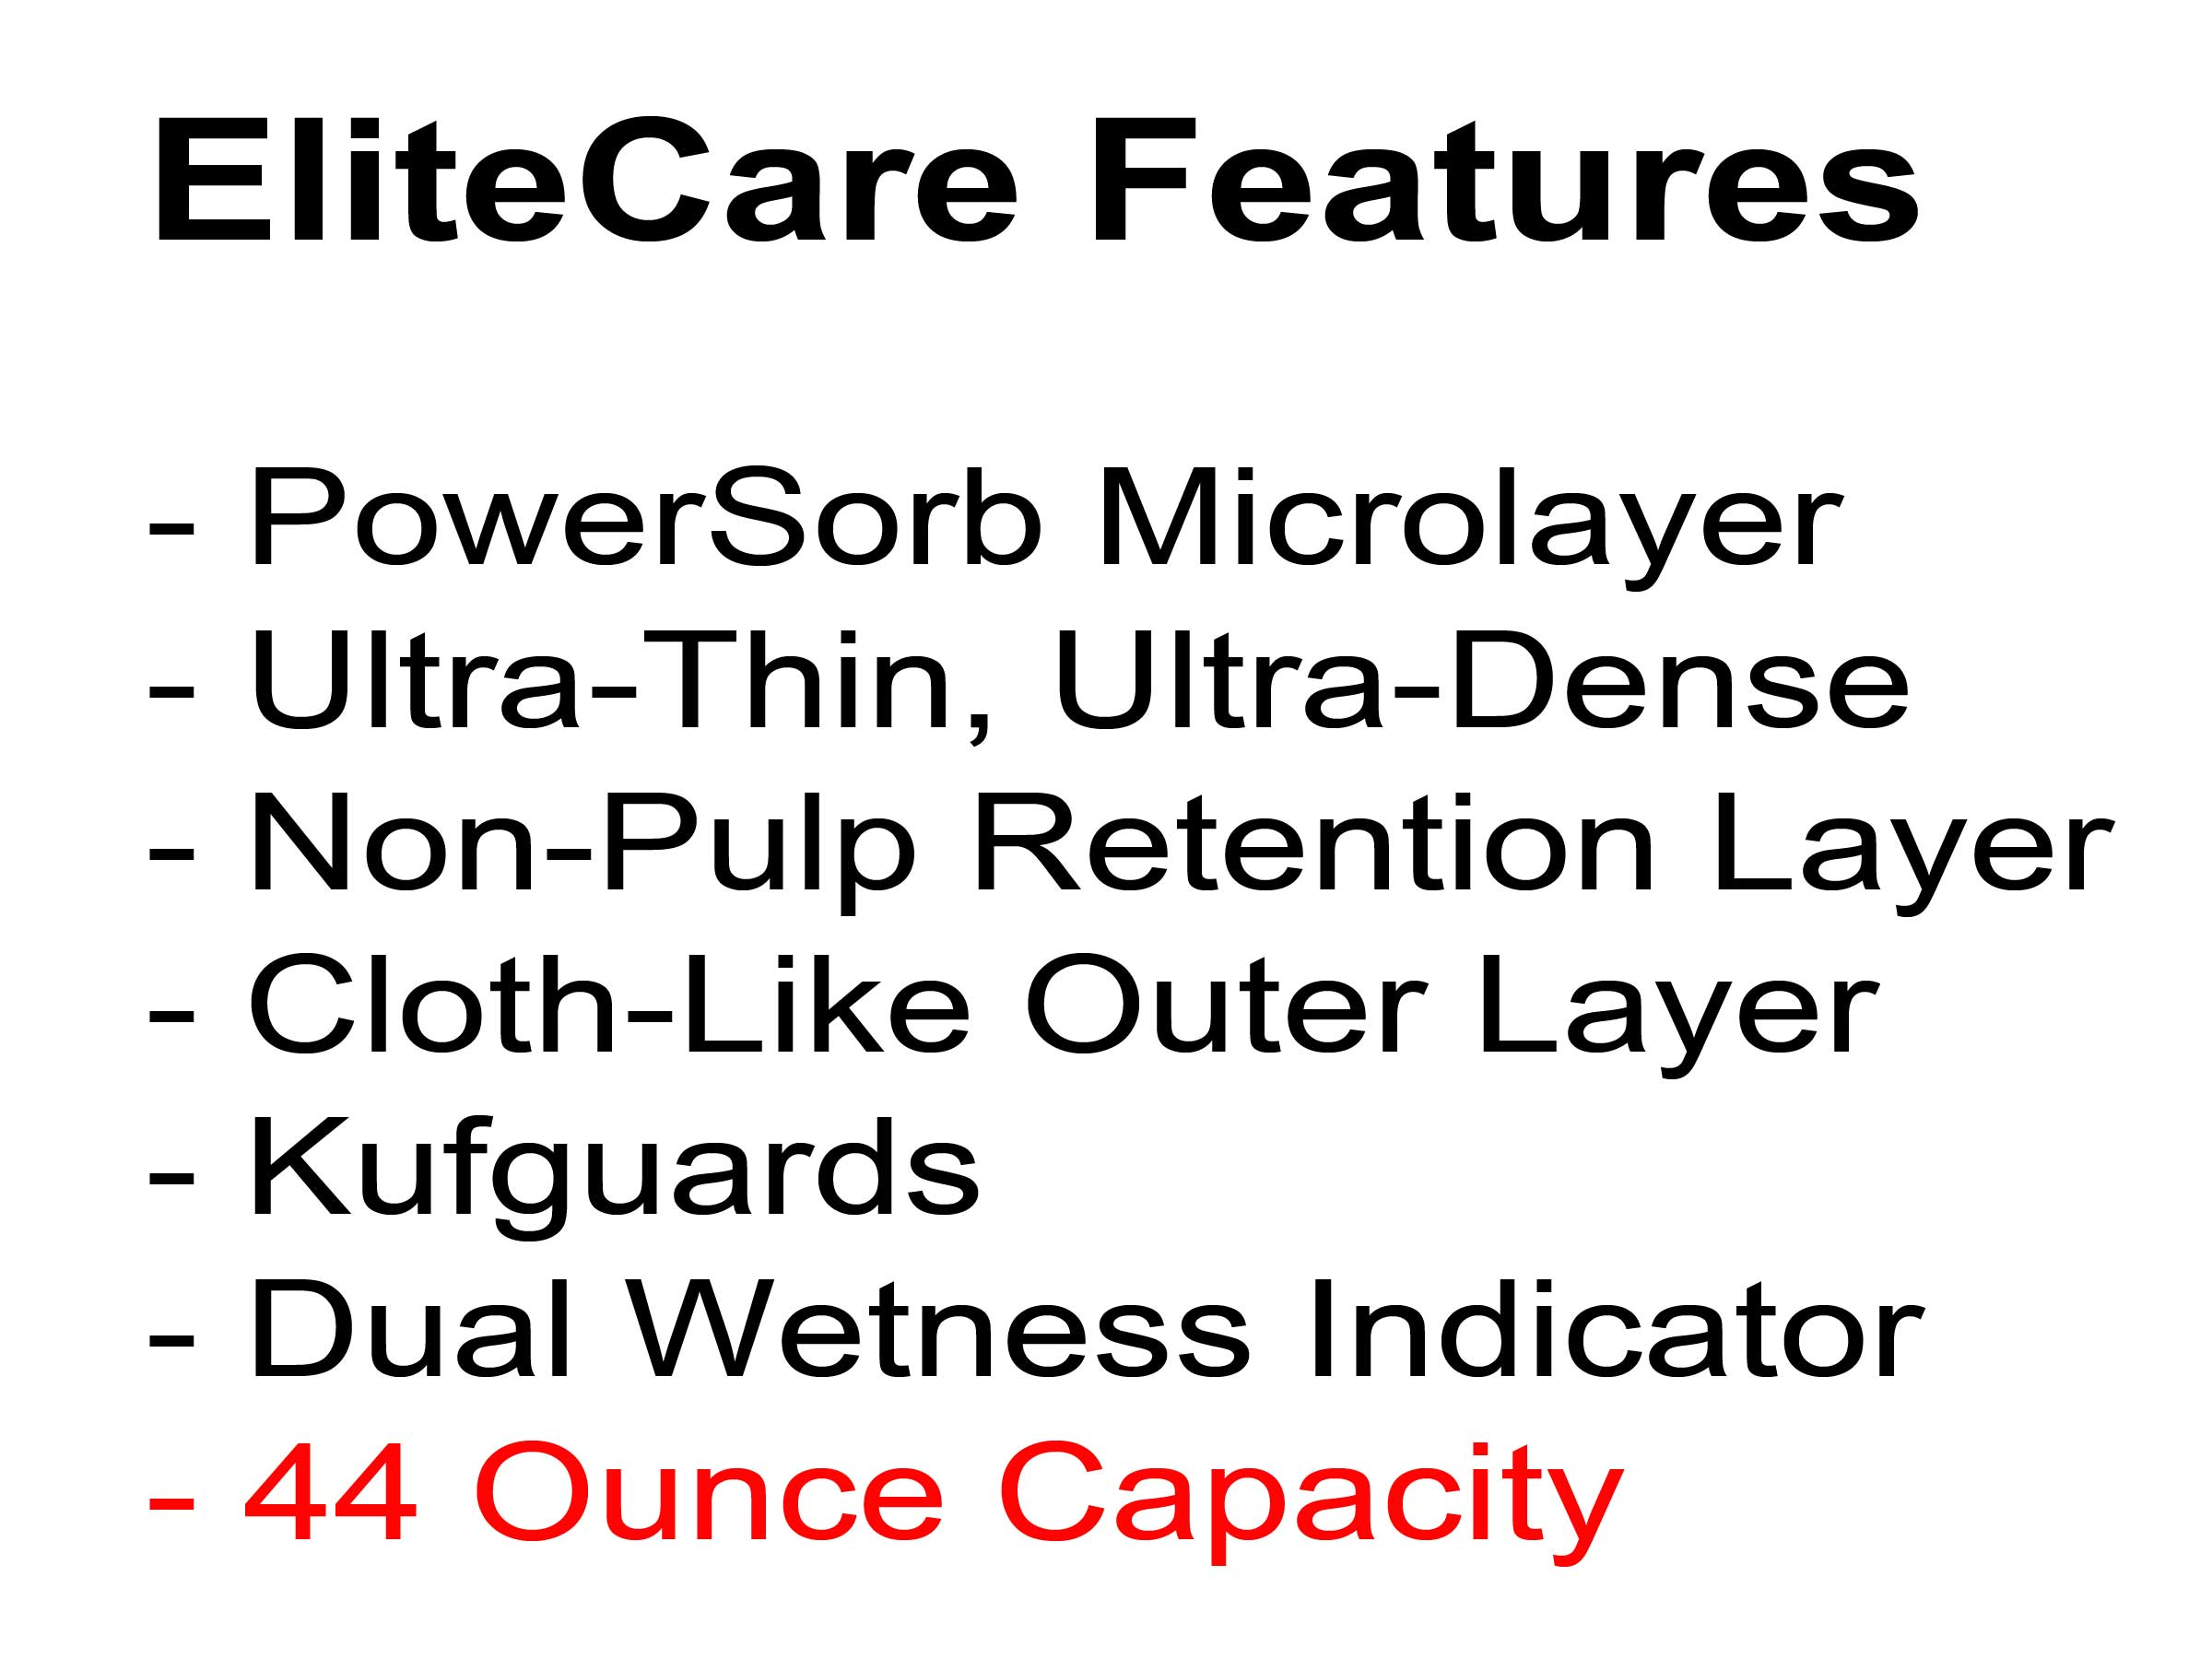 Tranquility Elite Care Features and Benefits